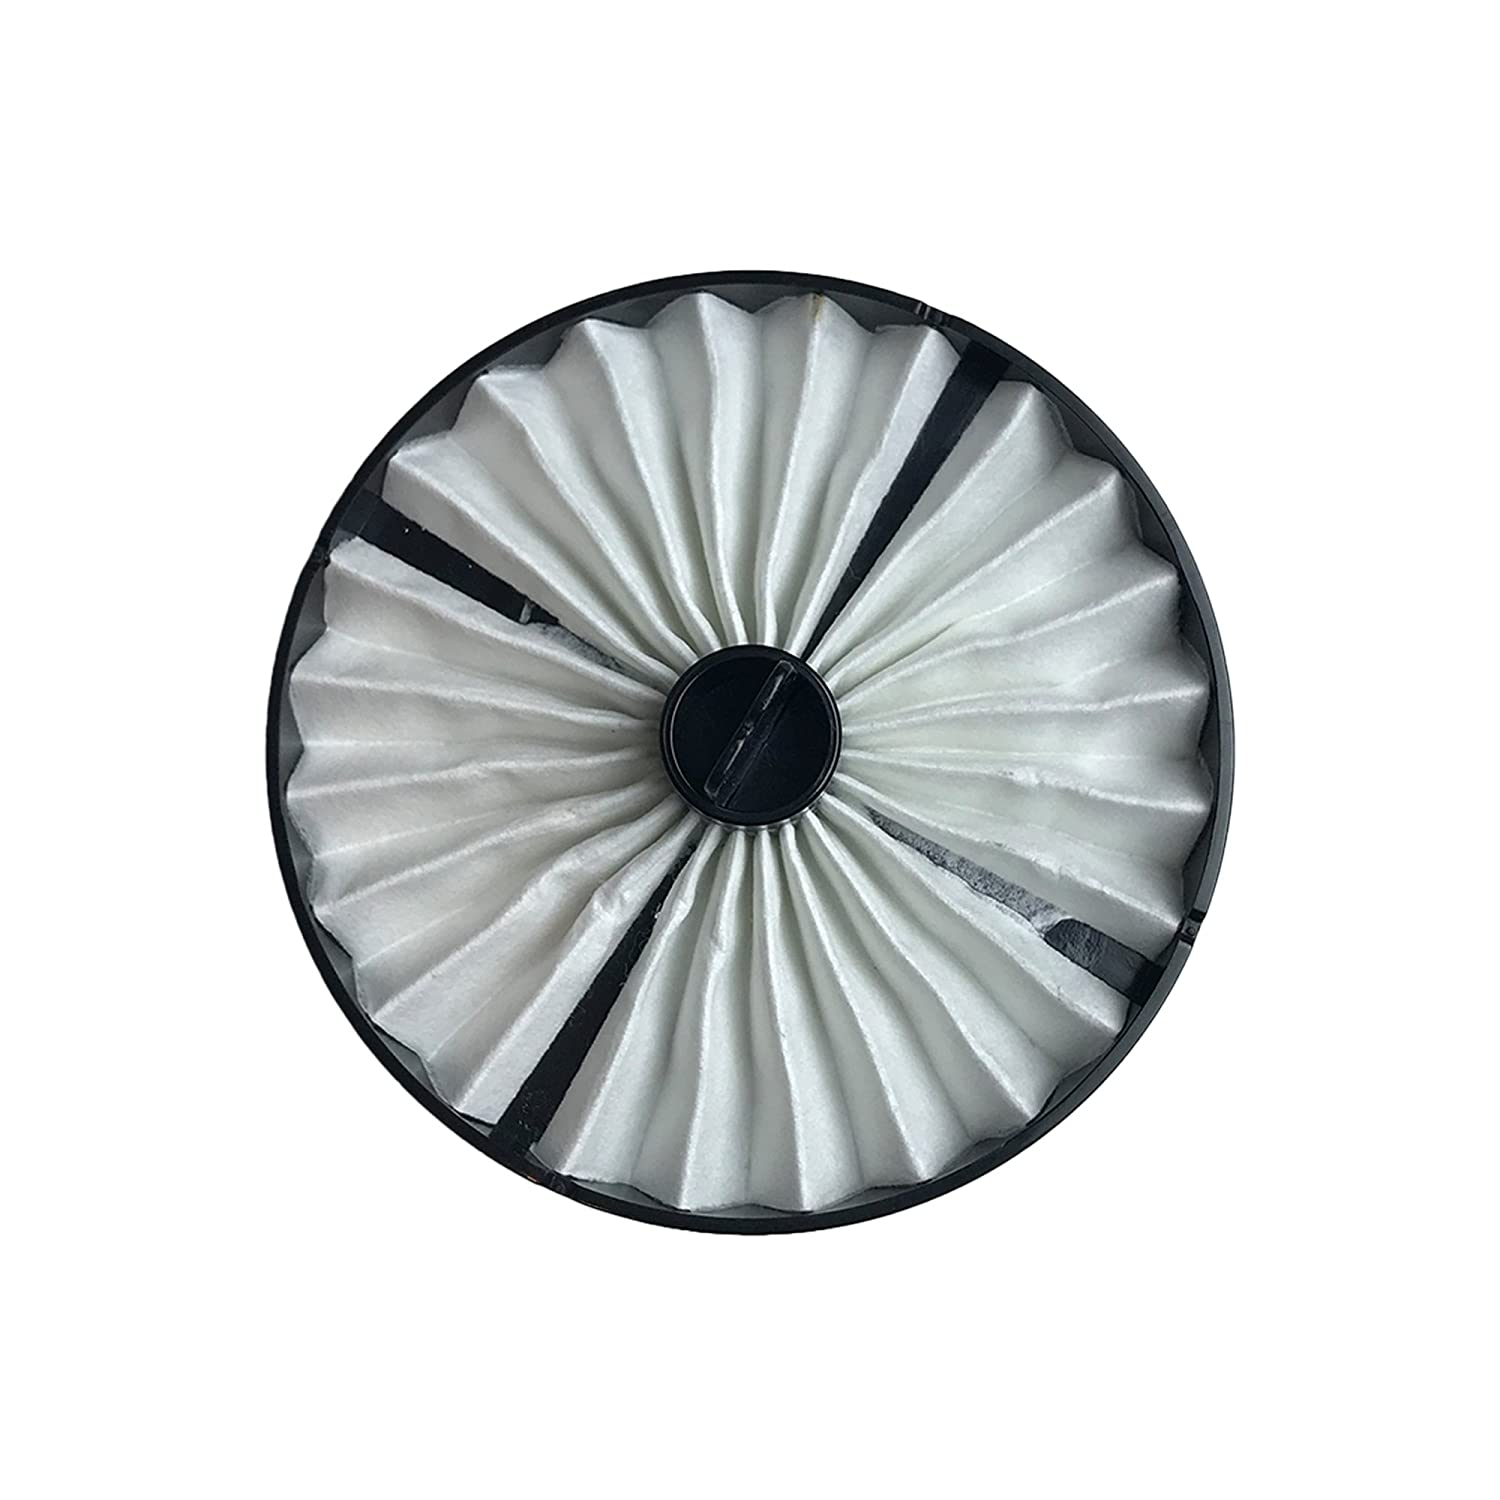 1 Hoover WindTunnel HEPA Filter Designed To Fit Hoover Vacuum WindTunnel Models S3755, S3765, S3755045, S3765040, S3755080, Compare to part # 59134050, Designed and Engineered by Crucial Vacuum AX-AY-ABHI-47517